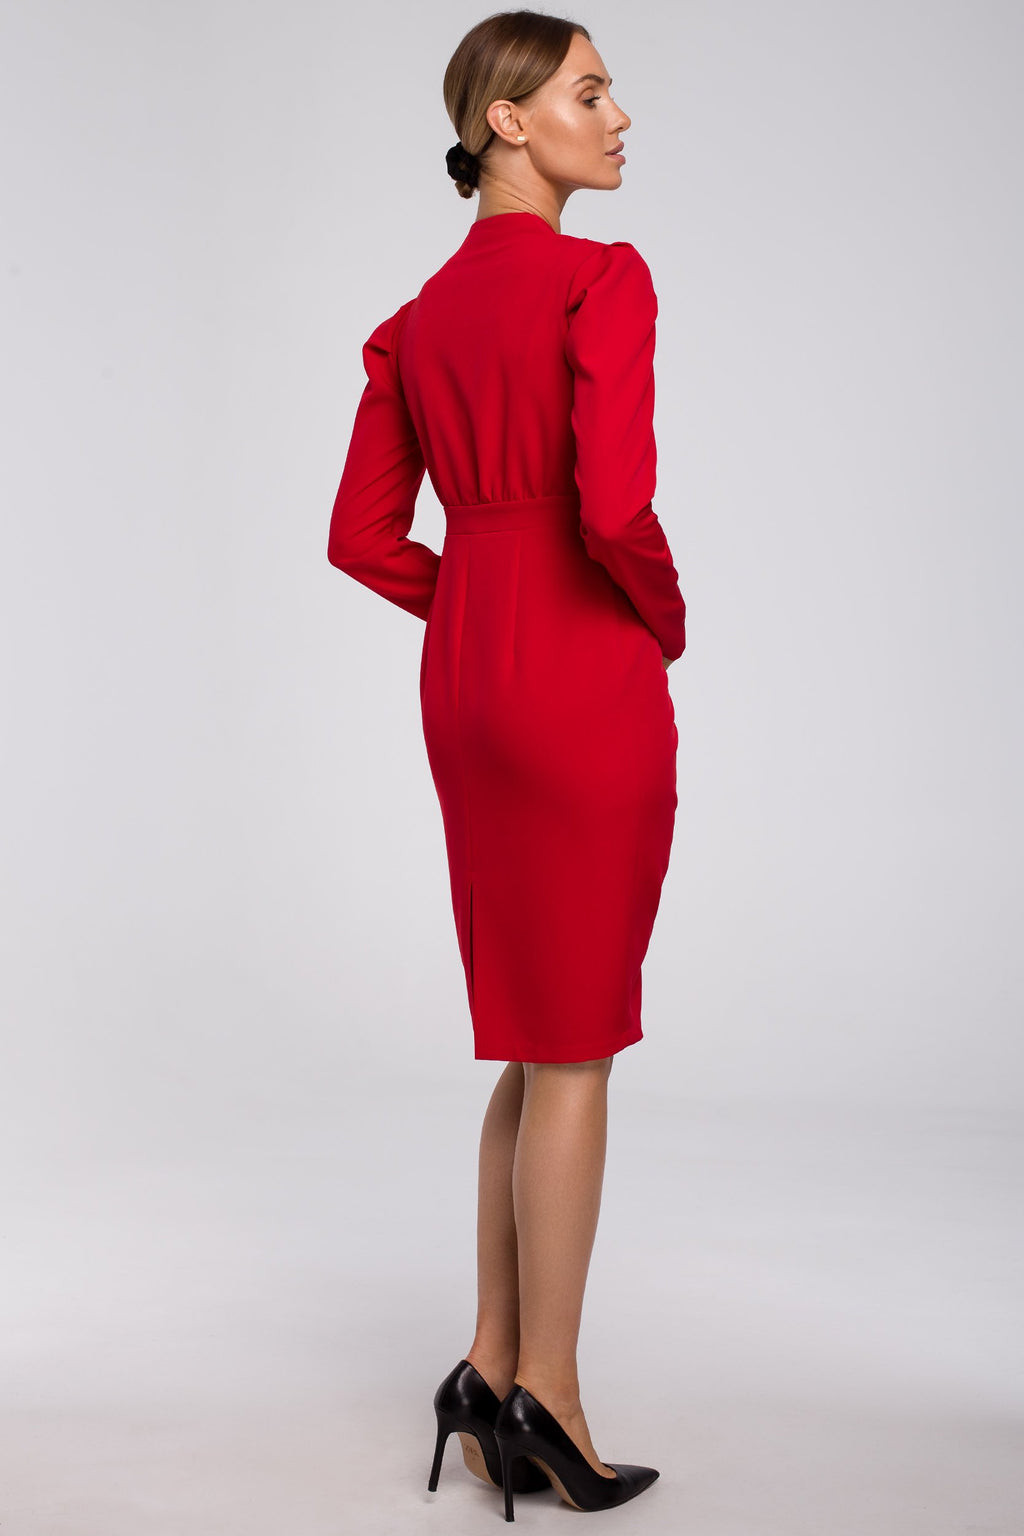 Midi Red Dress With Gathered Front - So Chic Boutique